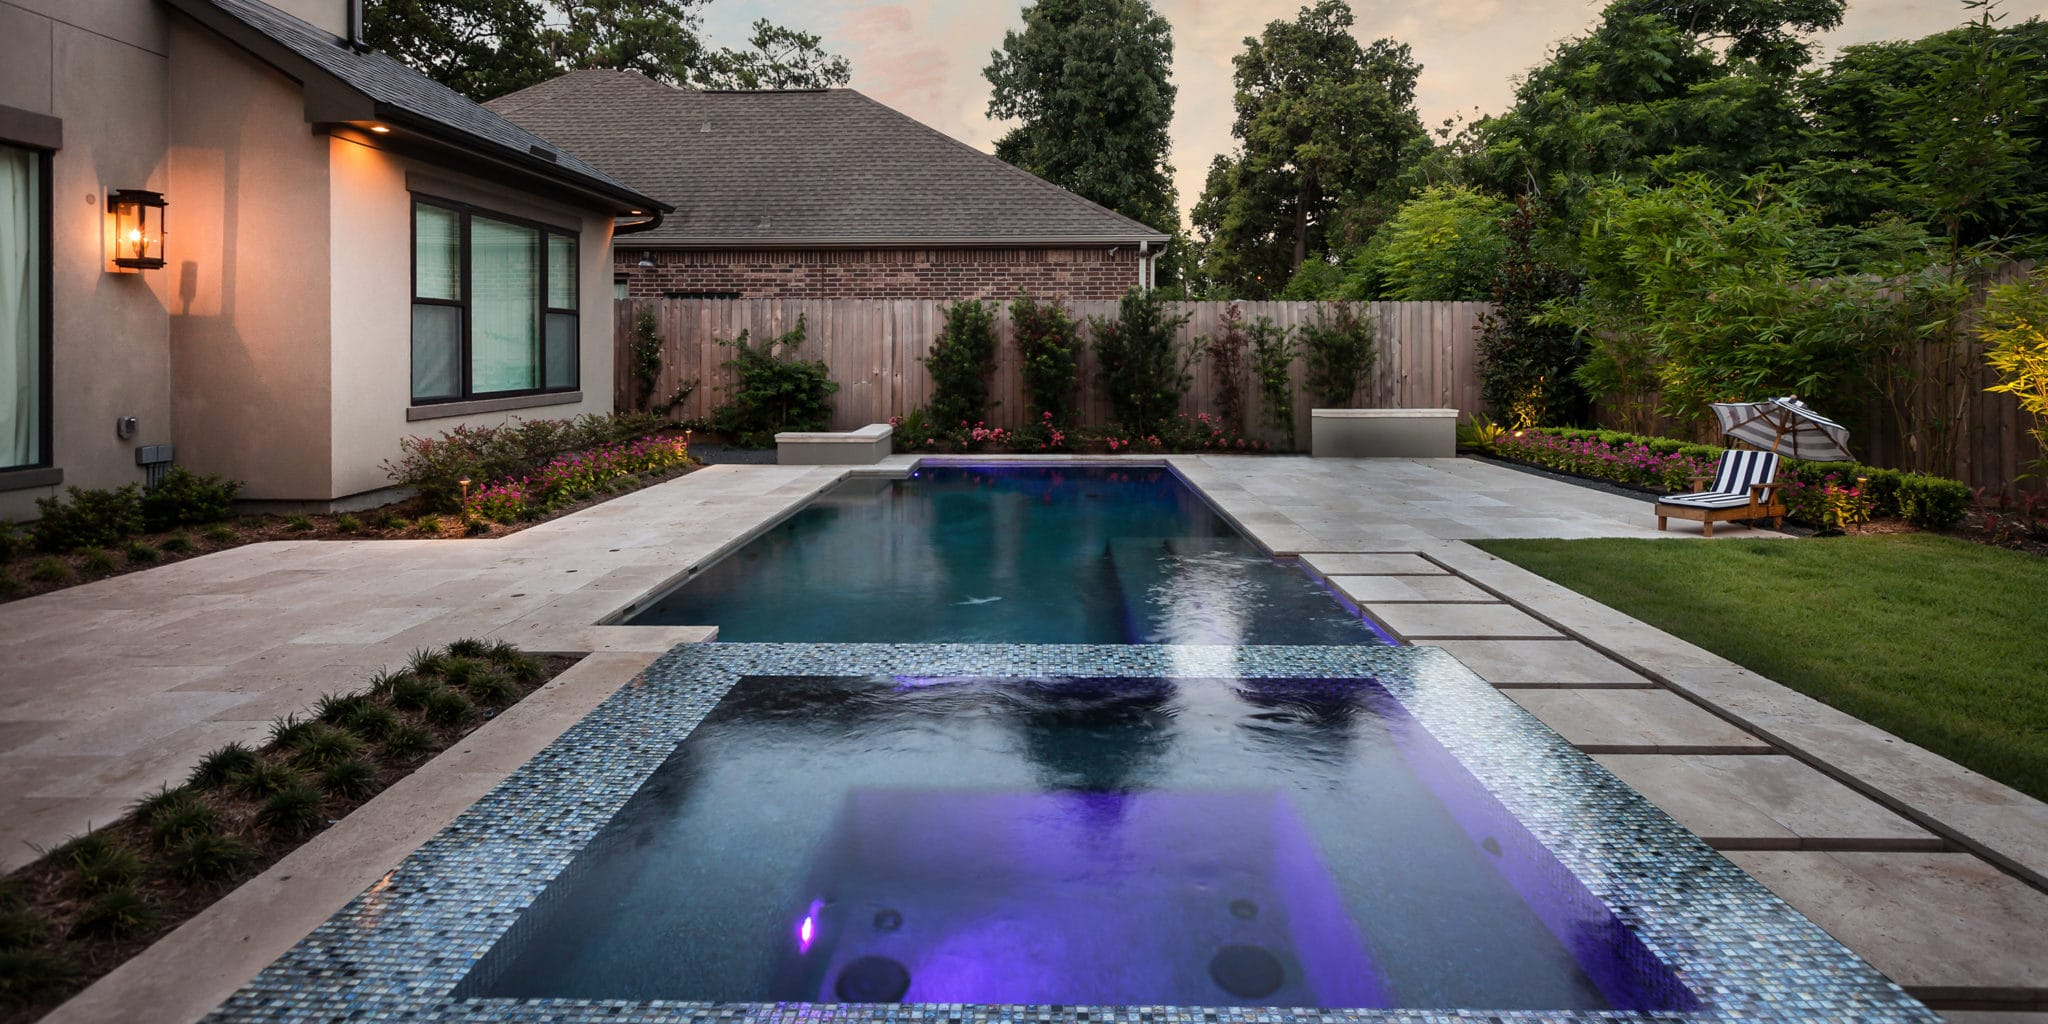 Swimming Pool Pictures Designs And Ideas For Pool And